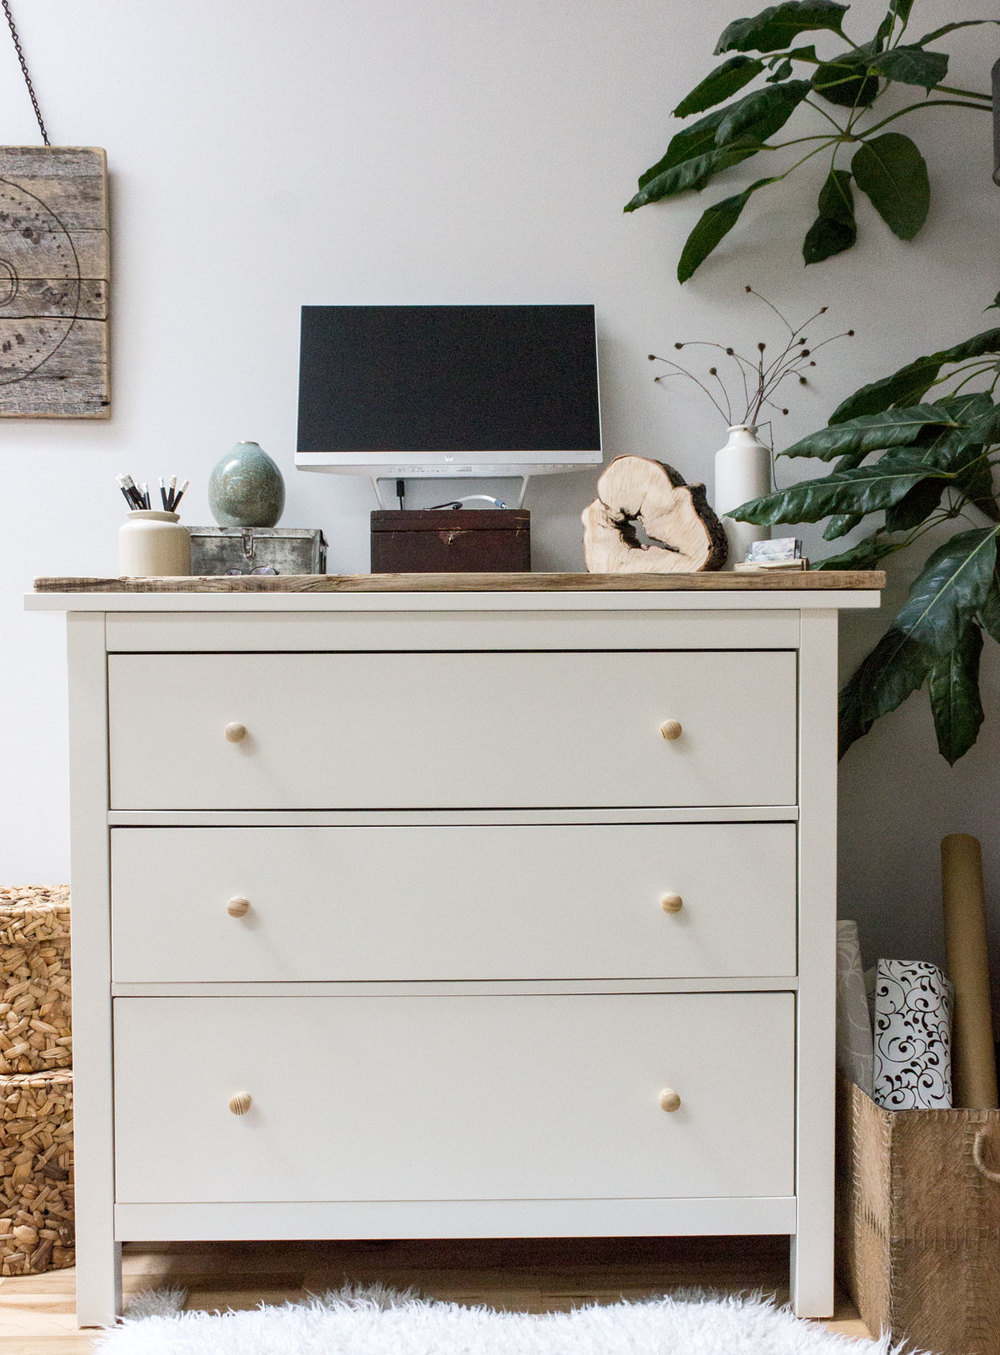 Click for full post on DIY standing desk from an IKEA dresser